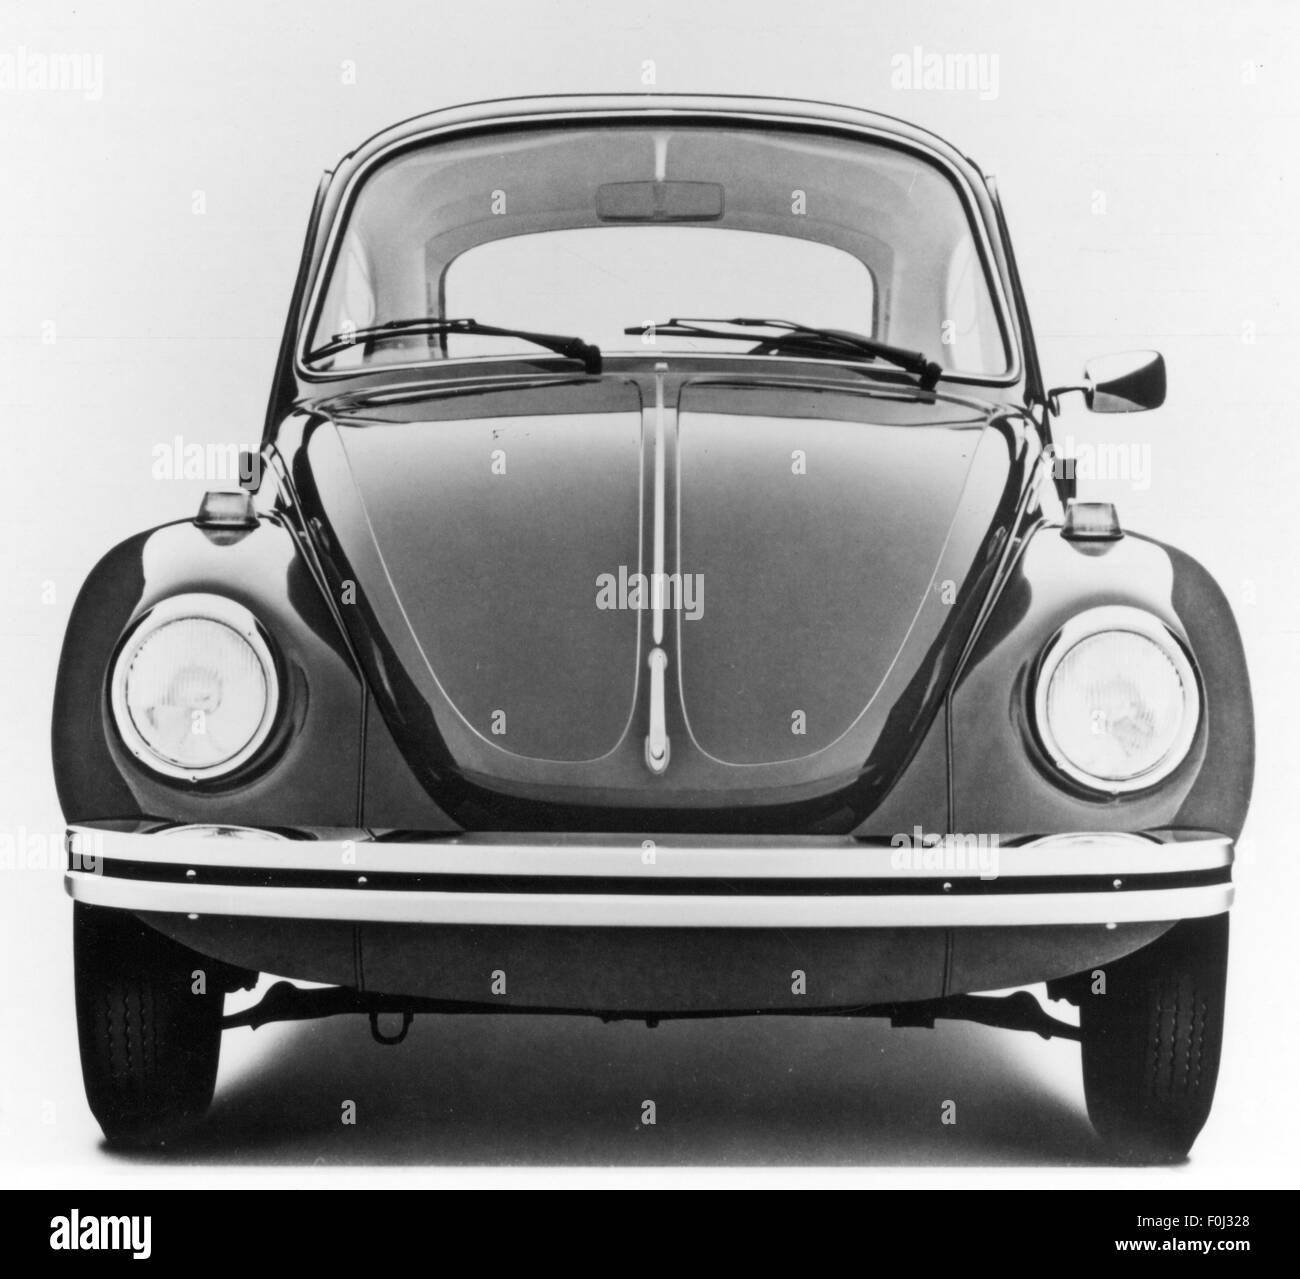 transport / transportation, car, vehicle variants, Volkswagen, VW 1303 beetle, front view, 1972, Additional-Rights - Stock Image